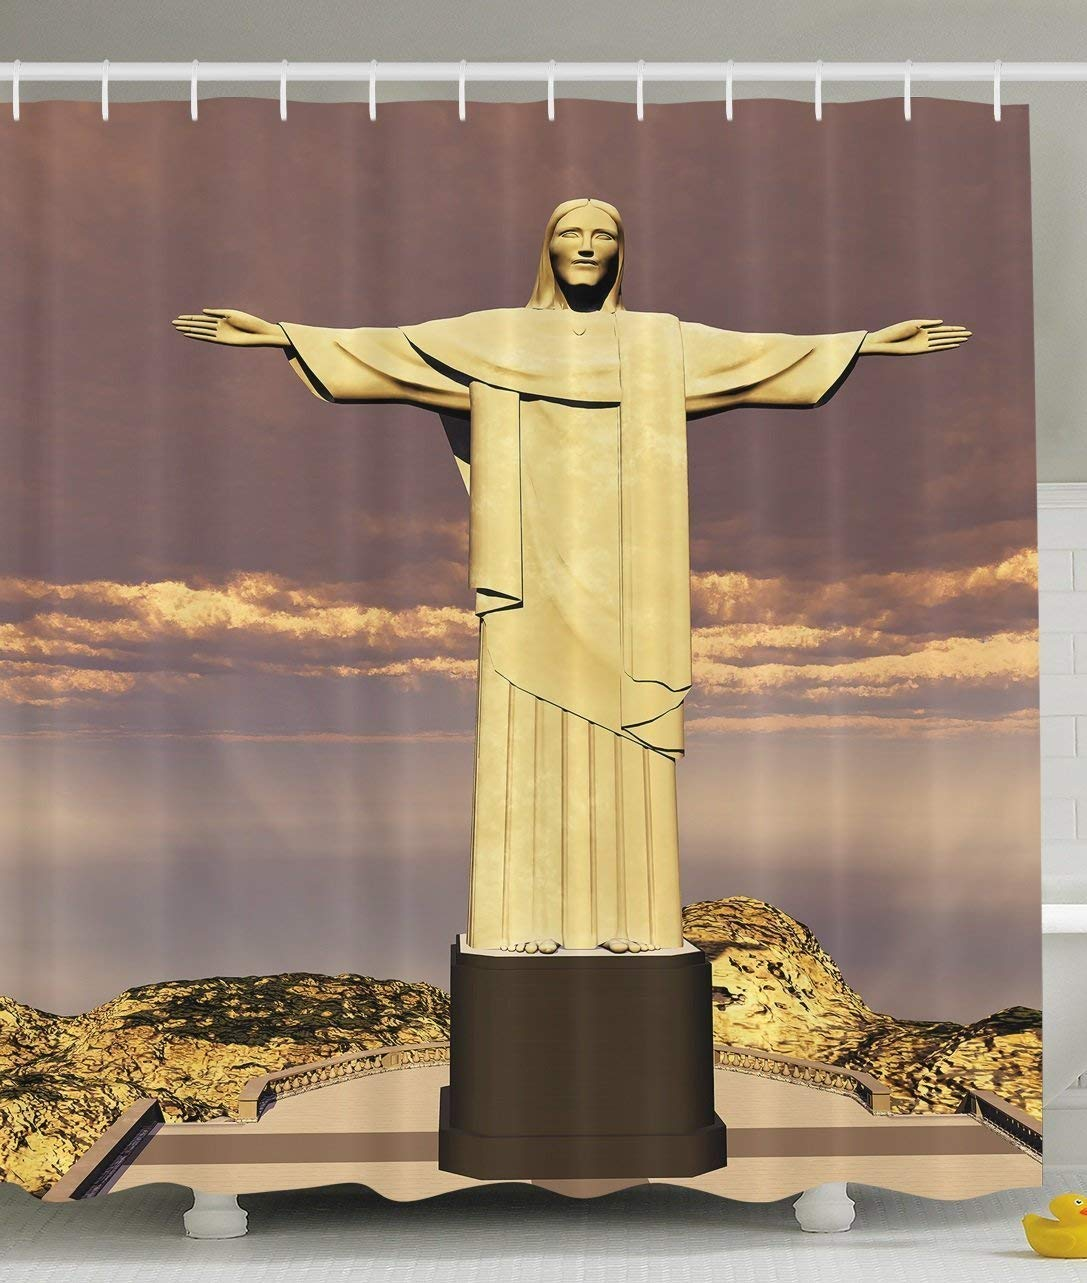 werert Grandma Gifts Famous The Reedemer Statue Rio Symbol De Janeiro City Symbol Rio of Monumental Architecture Sculpture Bath Decor Shower Curtain, Taupe Yellow Marrón 60 X 72 bba7c2